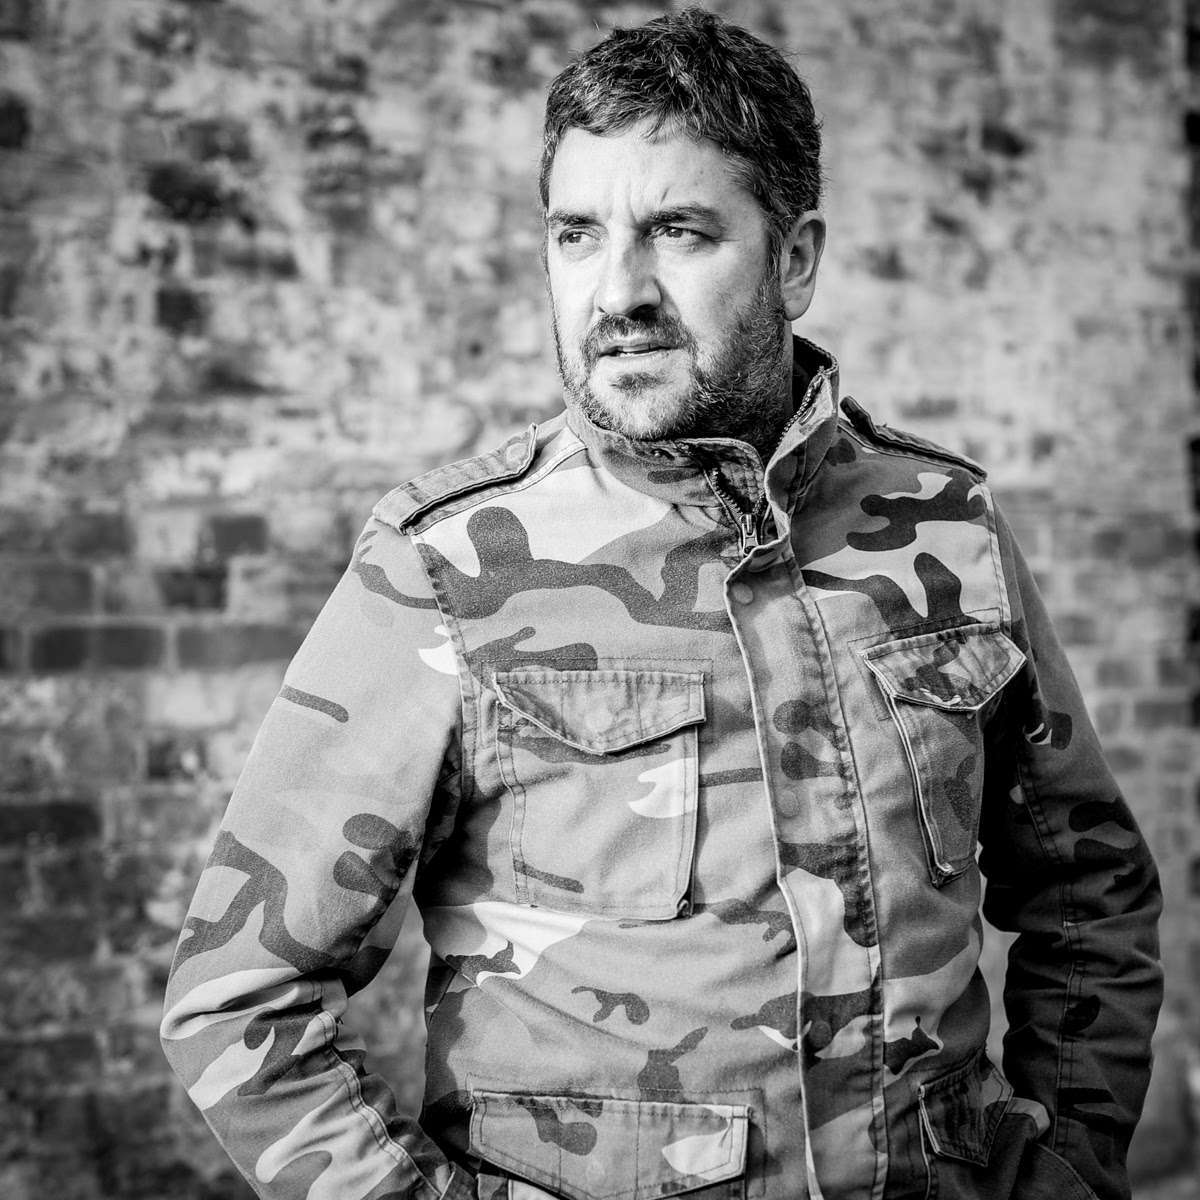 Ian Prowse final show of 2015 EVAC in Liverpool